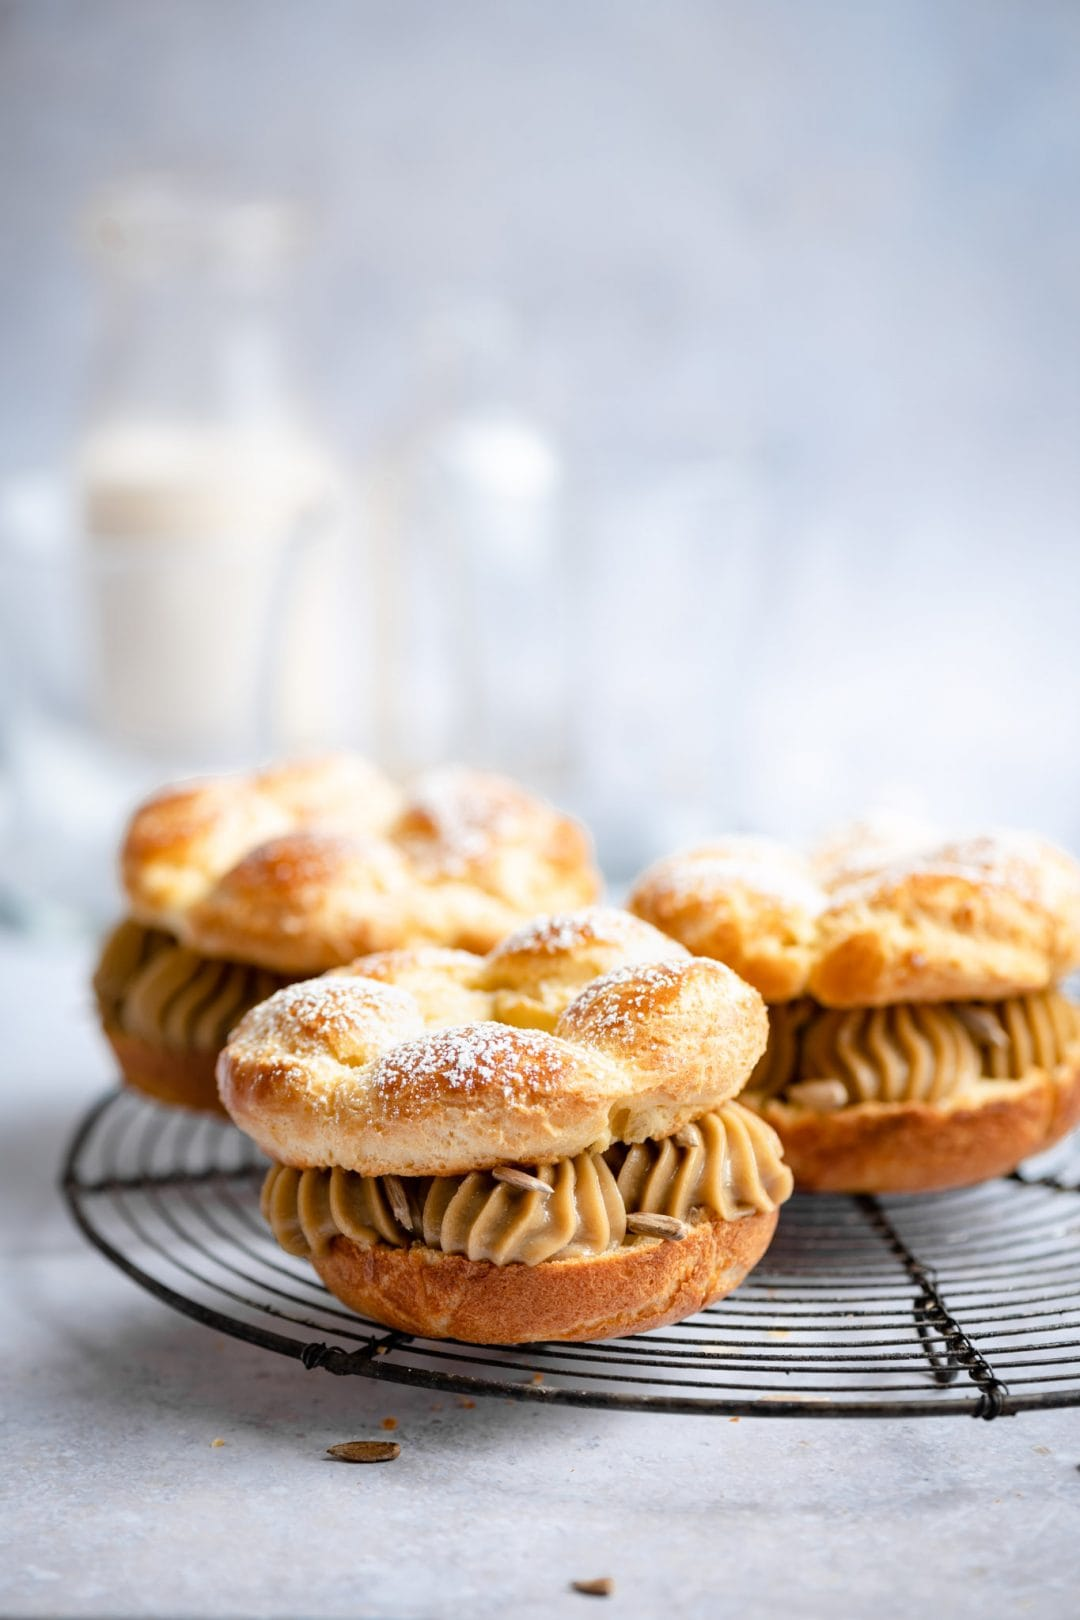 Recipe for Sunflower Paris Brest Recette frech pastry dessert